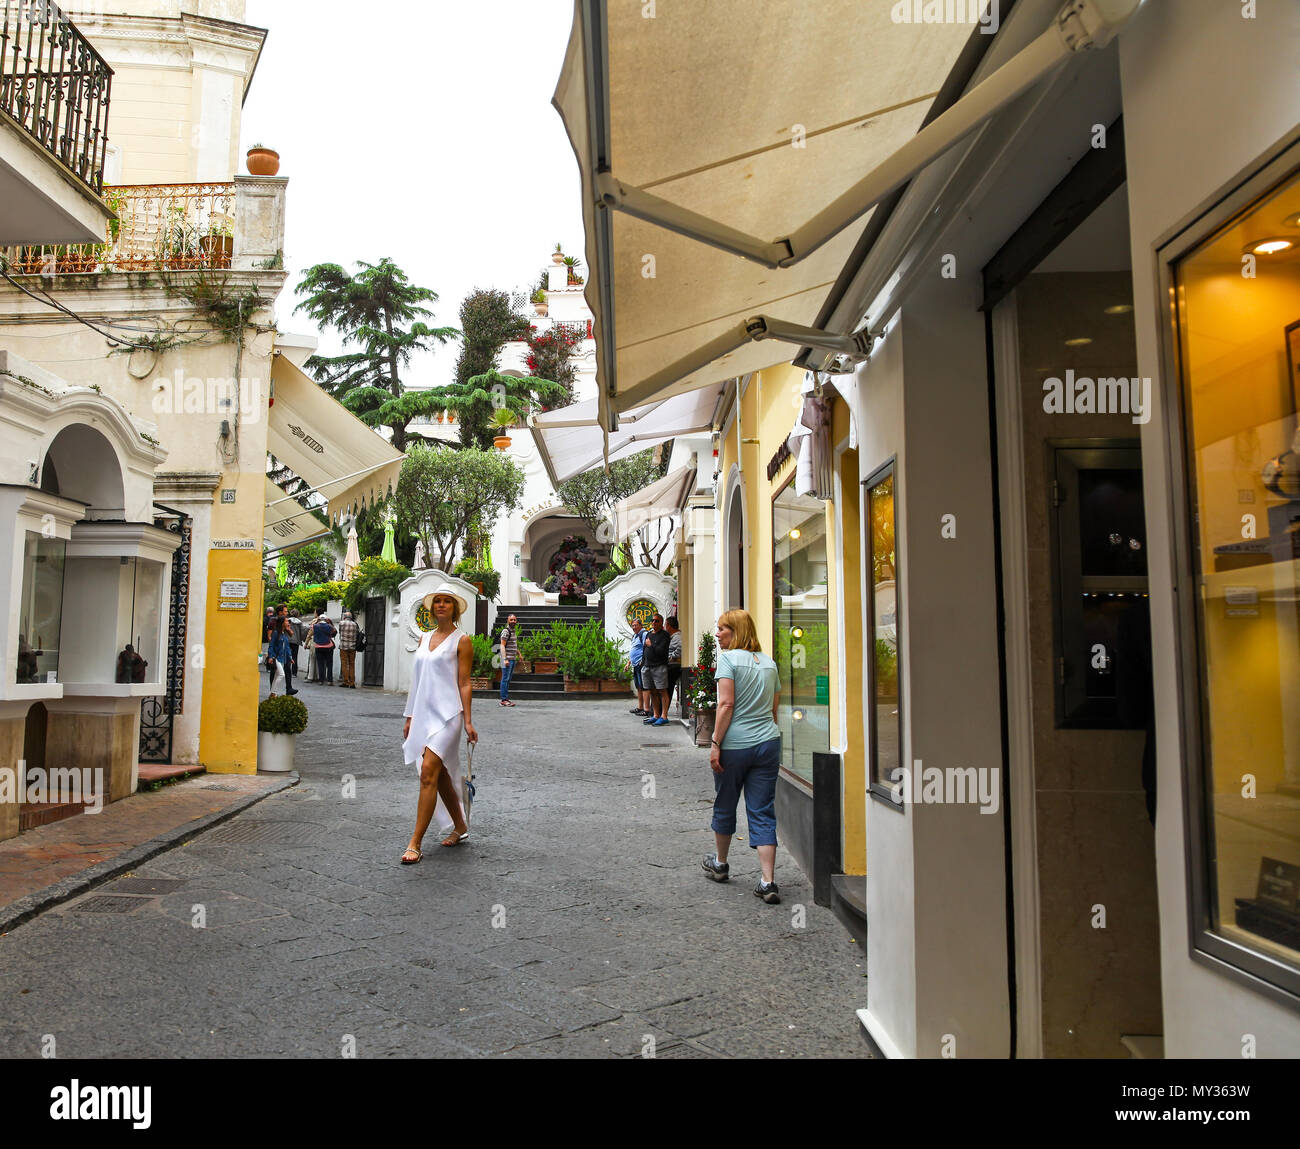 an-elegant-lady-strolling-the-via-camerelle-an-expensive-up-market-shopping-street-where-they-sell-designer-labels-on-the-island-of-capri-italy-MY363W.jpg